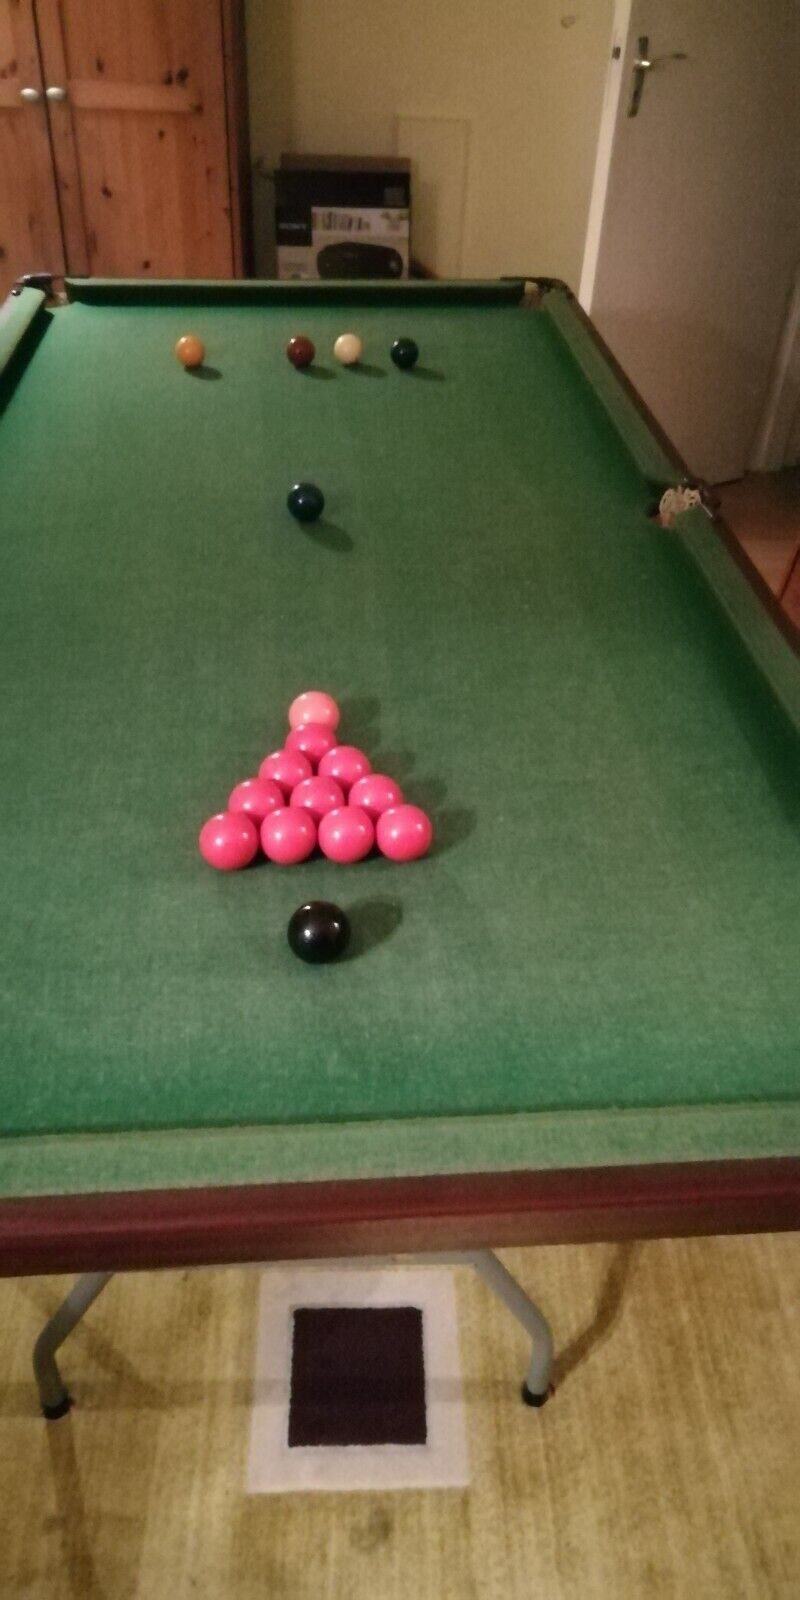 Snooker Table - Table Top - 6ft by 3ft - Play-Day Ltd Chelwood